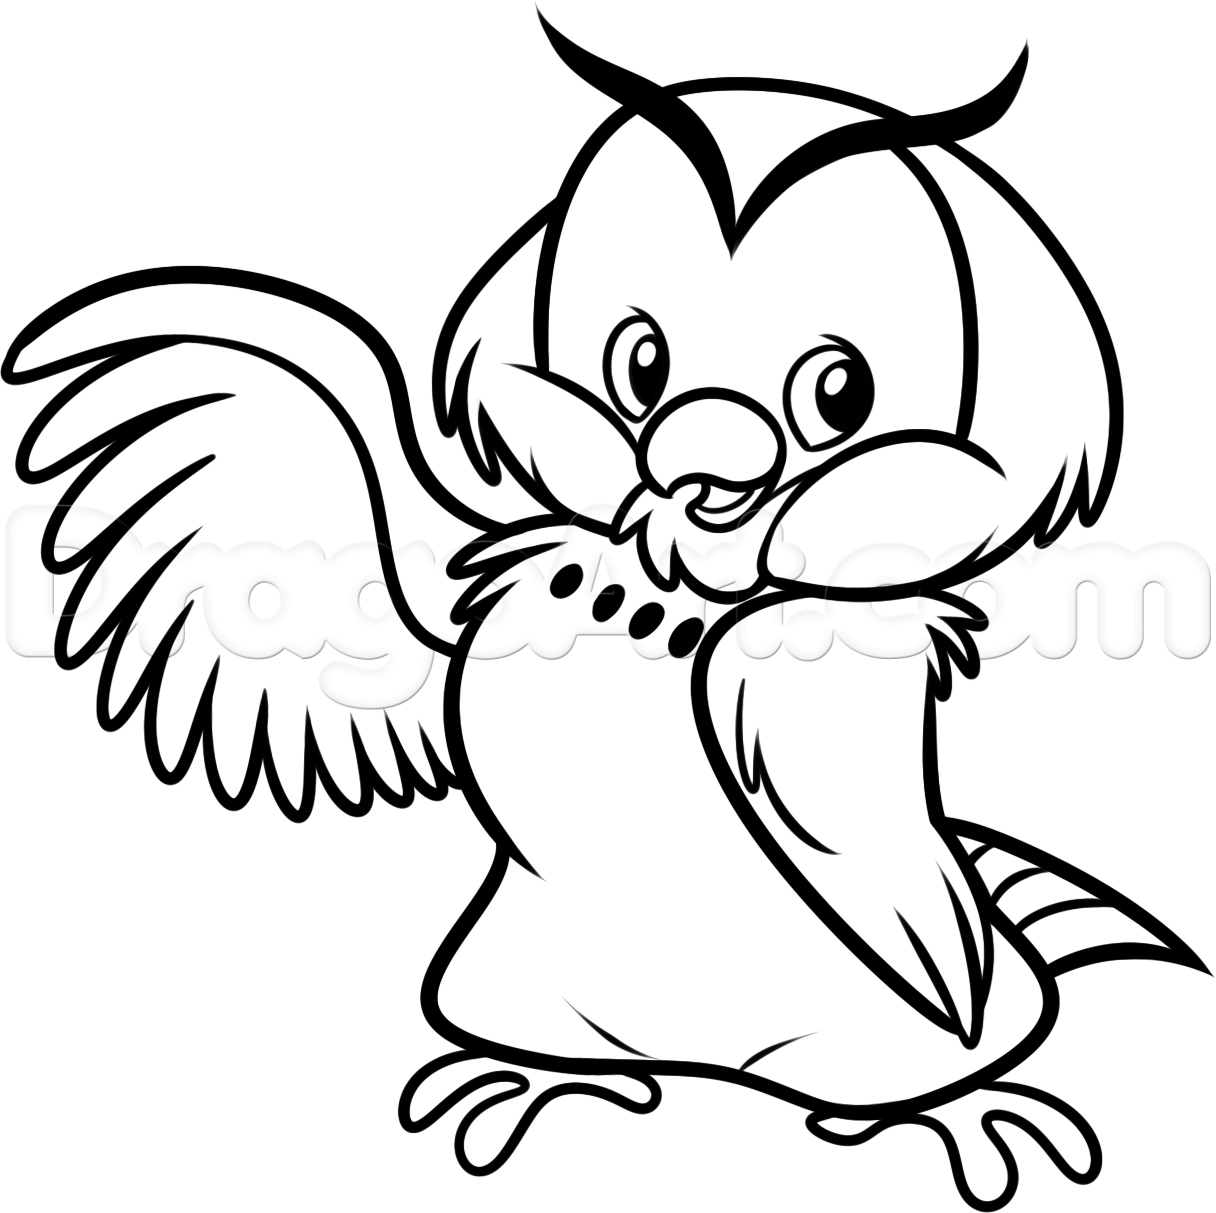 1216x1213 How To Draw Chibi Owl From Winnie The Pooh, Step